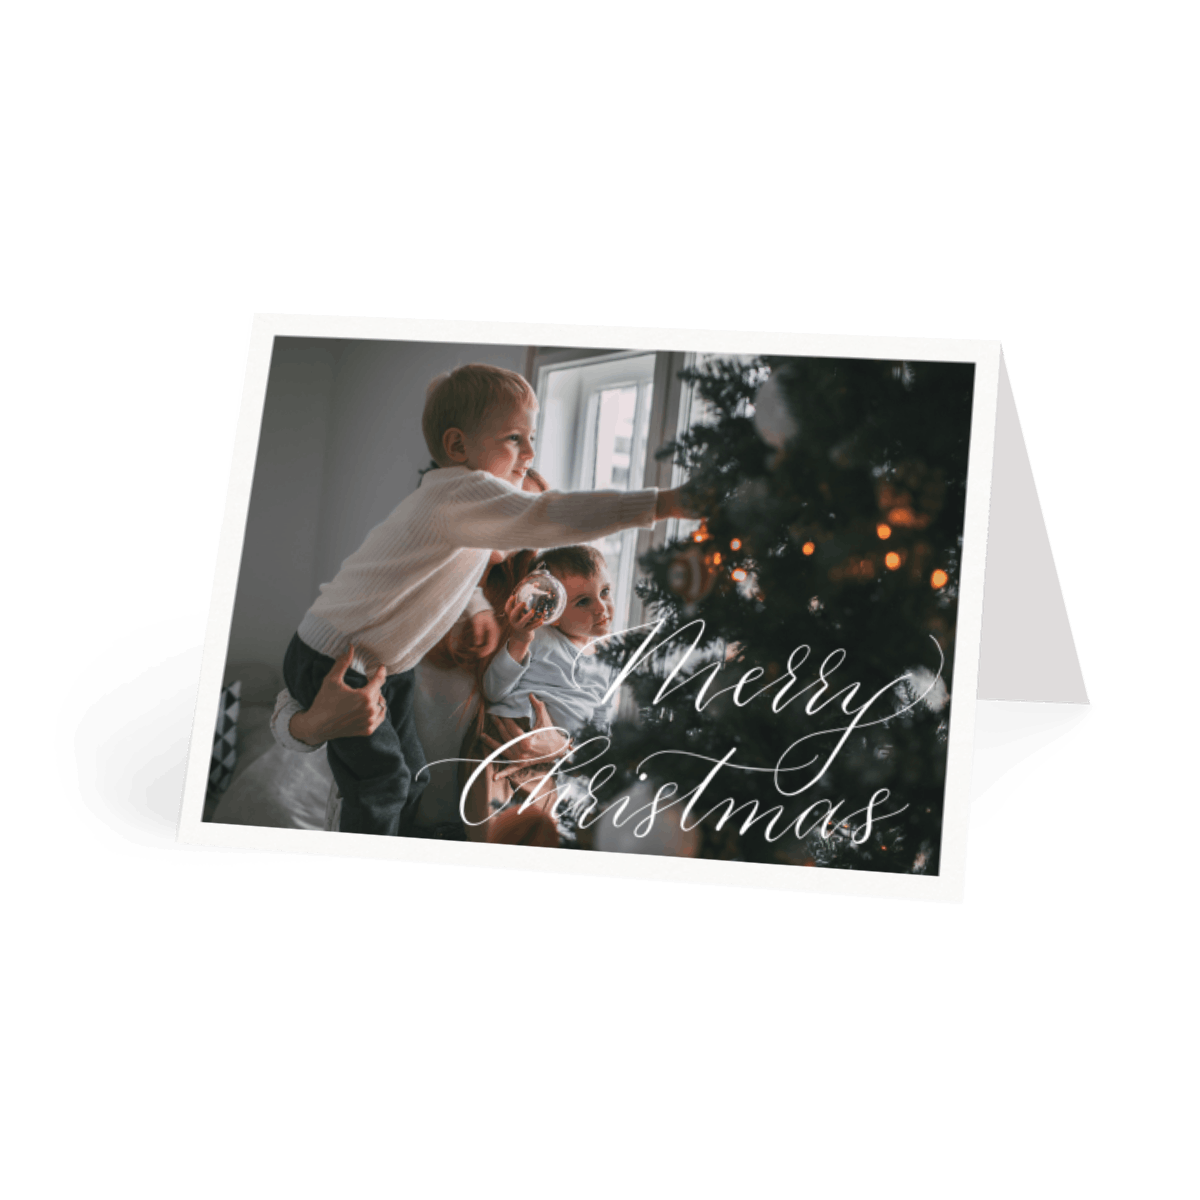 Https%3a%2f%2fwww.papier.com%2fproduct image%2f48365%2f14%2fmerry christmas 11881 front 1539008332.png?ixlib=rb 1.1